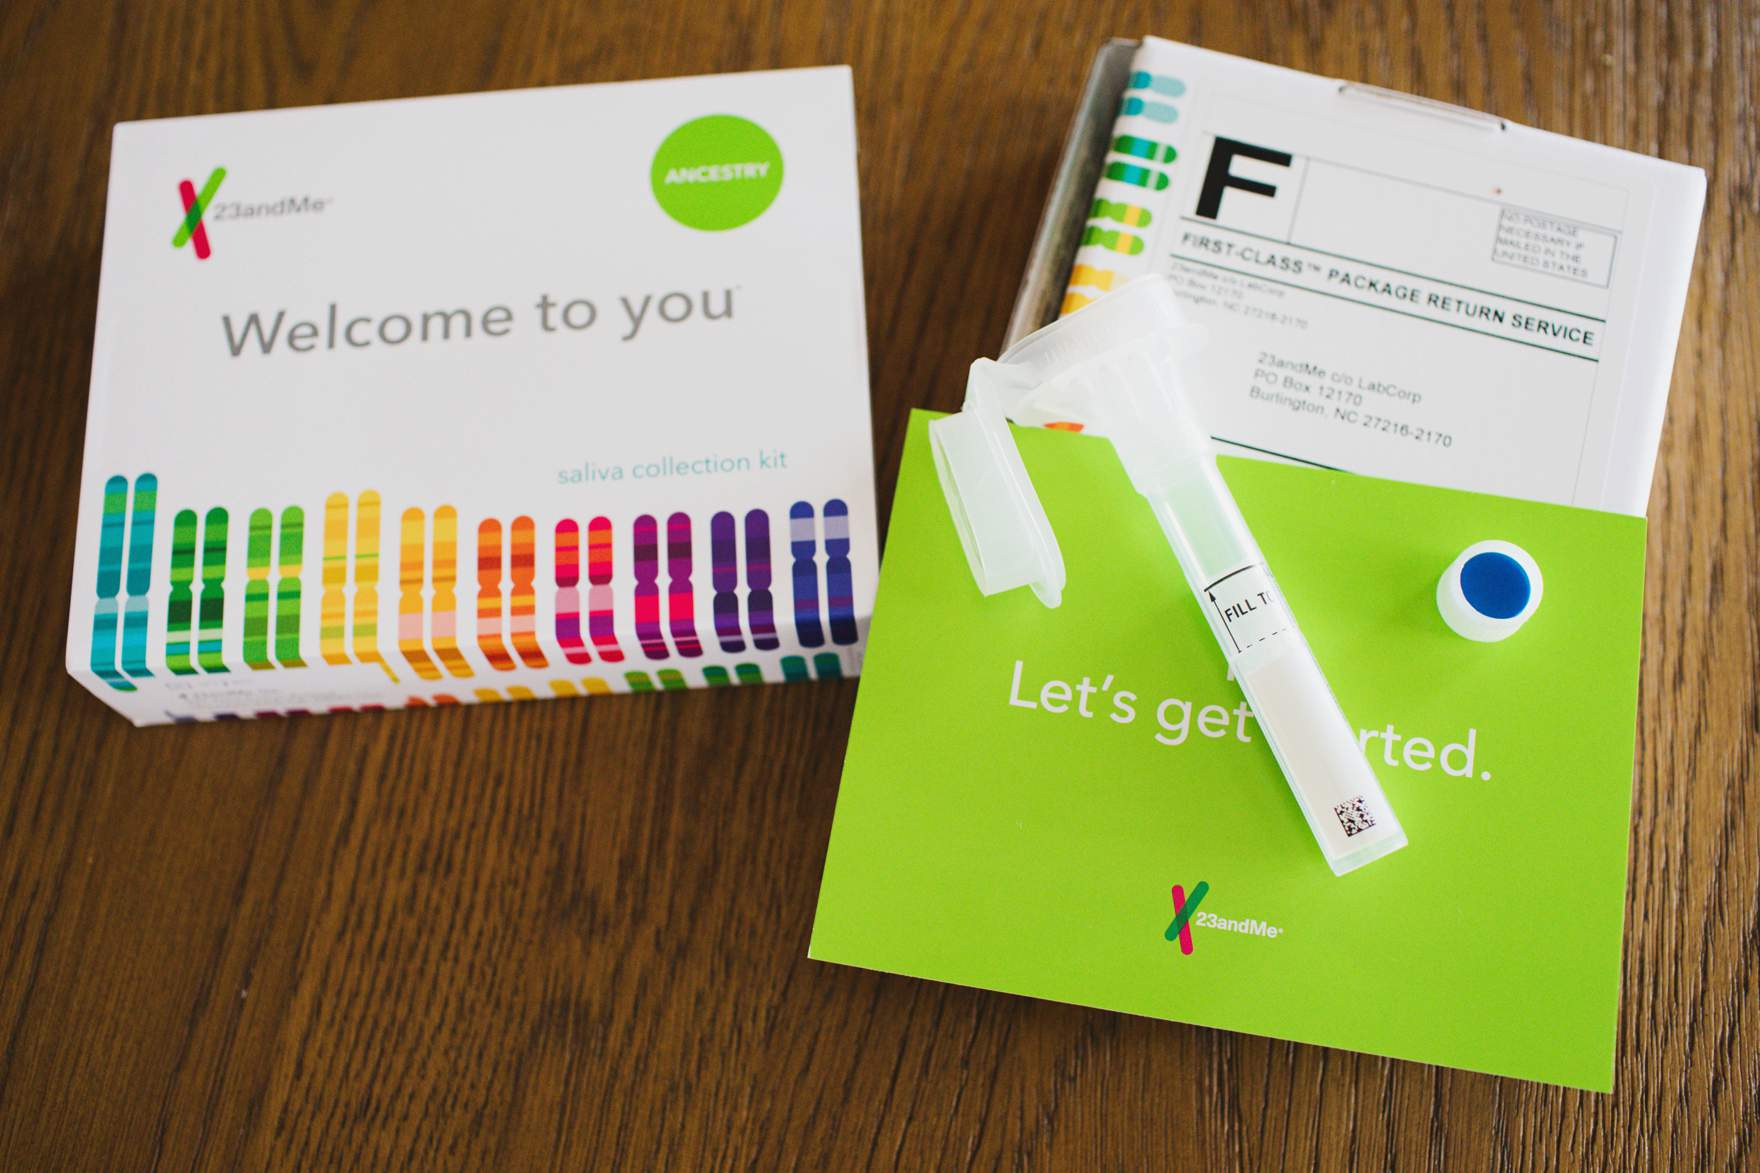 23andMe gift idea kit what is inside